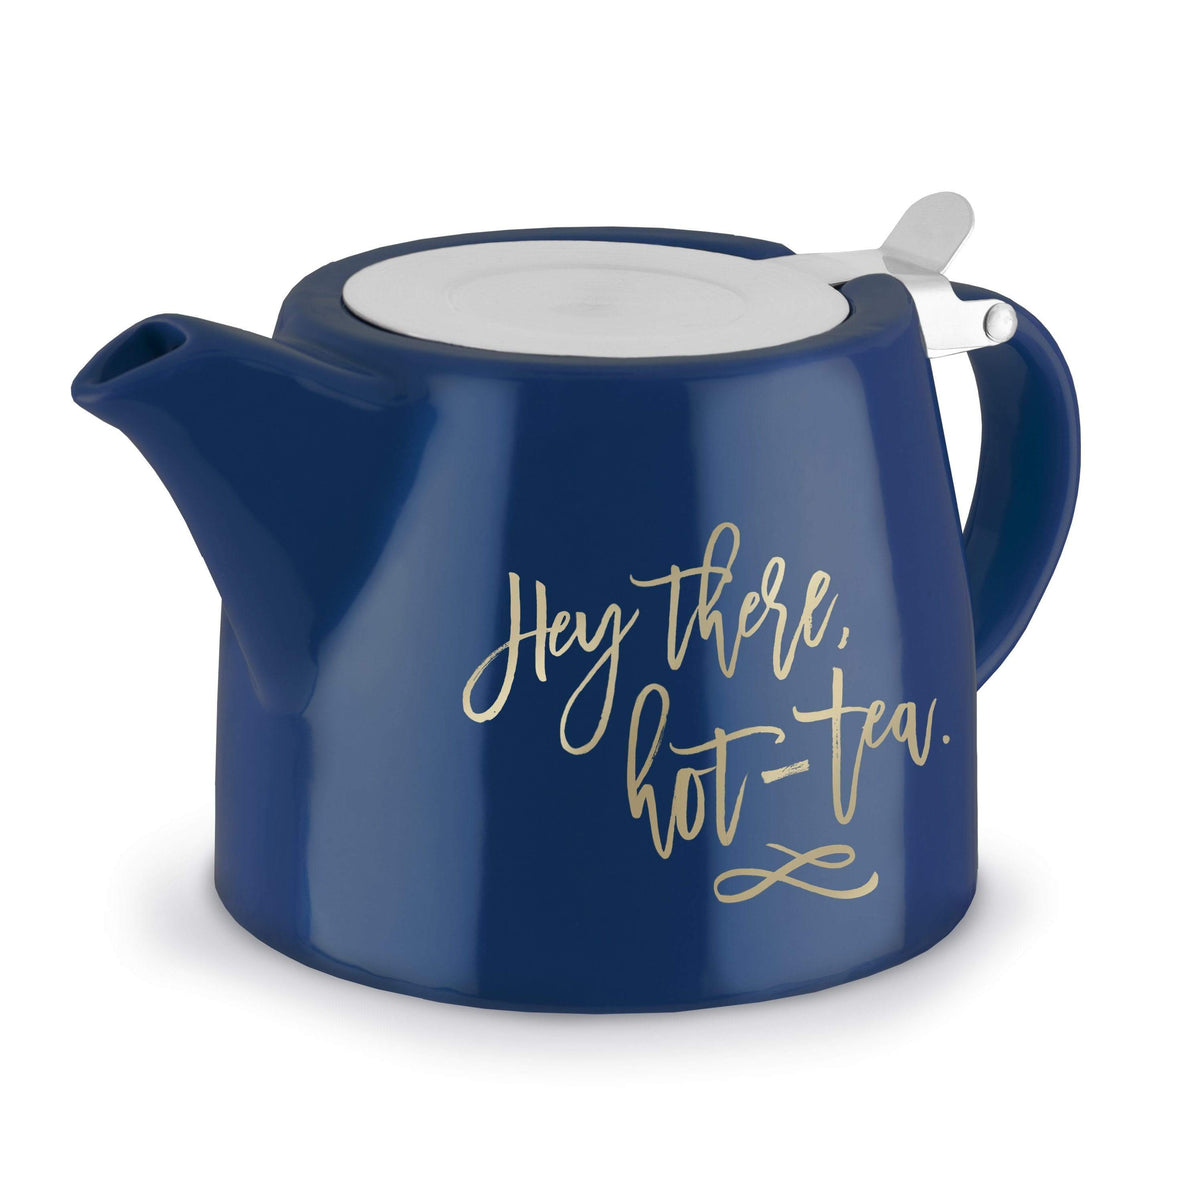 Harper Hey There, Hot-Tea Ceramic Teapot & Infuser